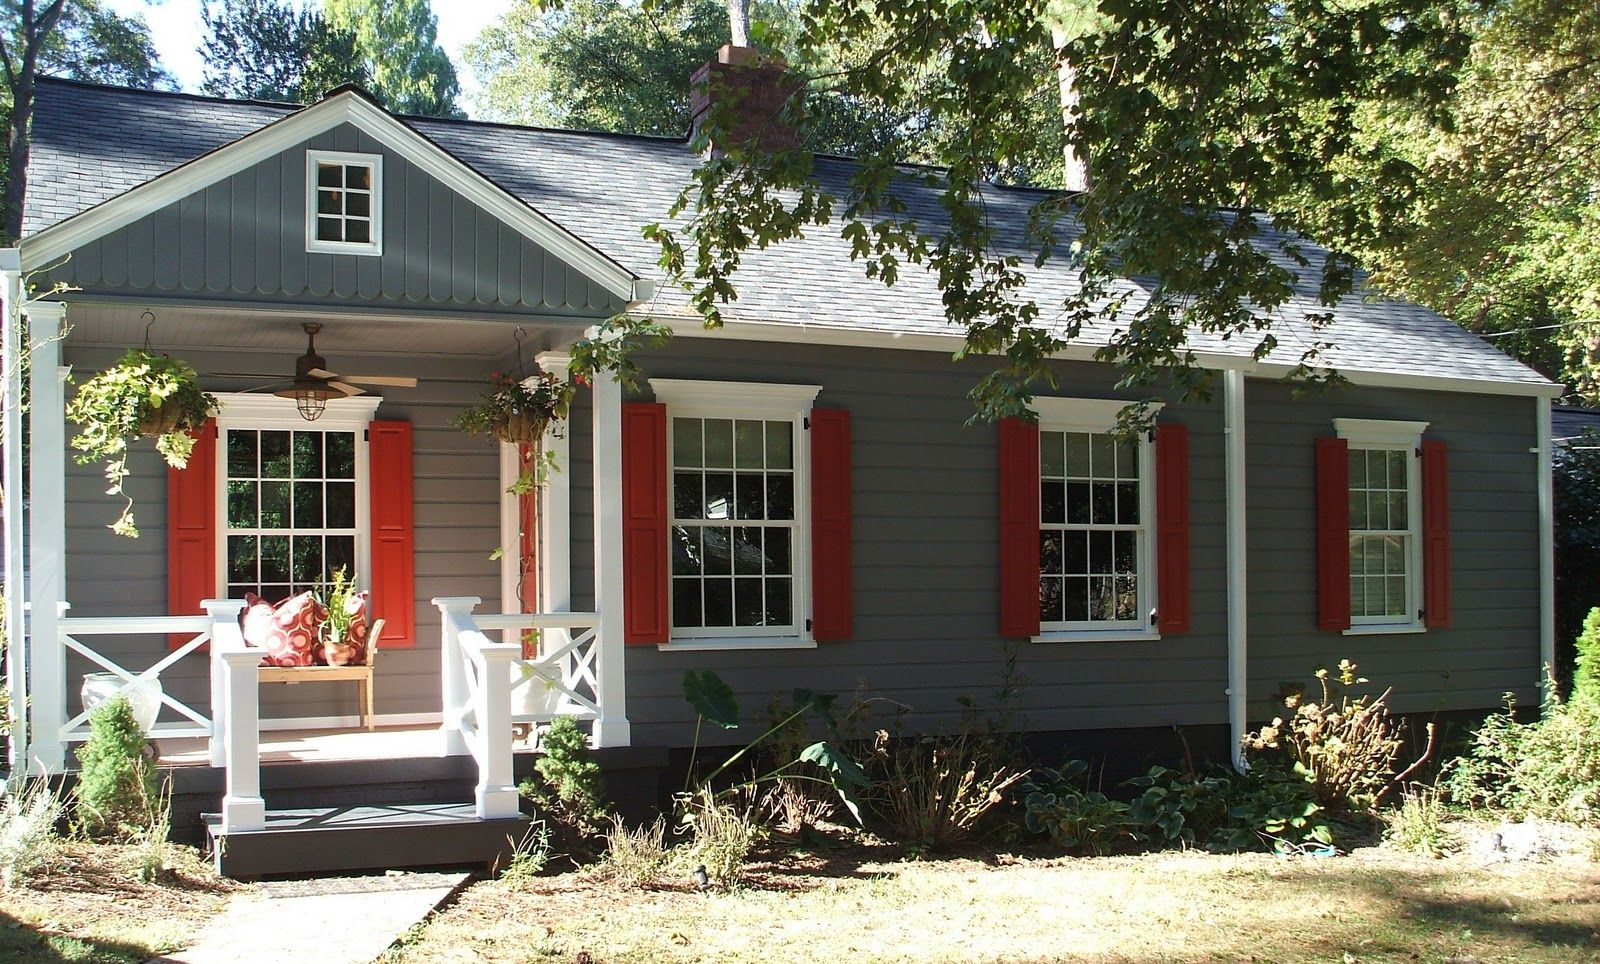 Cabin Exterior Paint Schemes | Exterior paint color suggestions ...